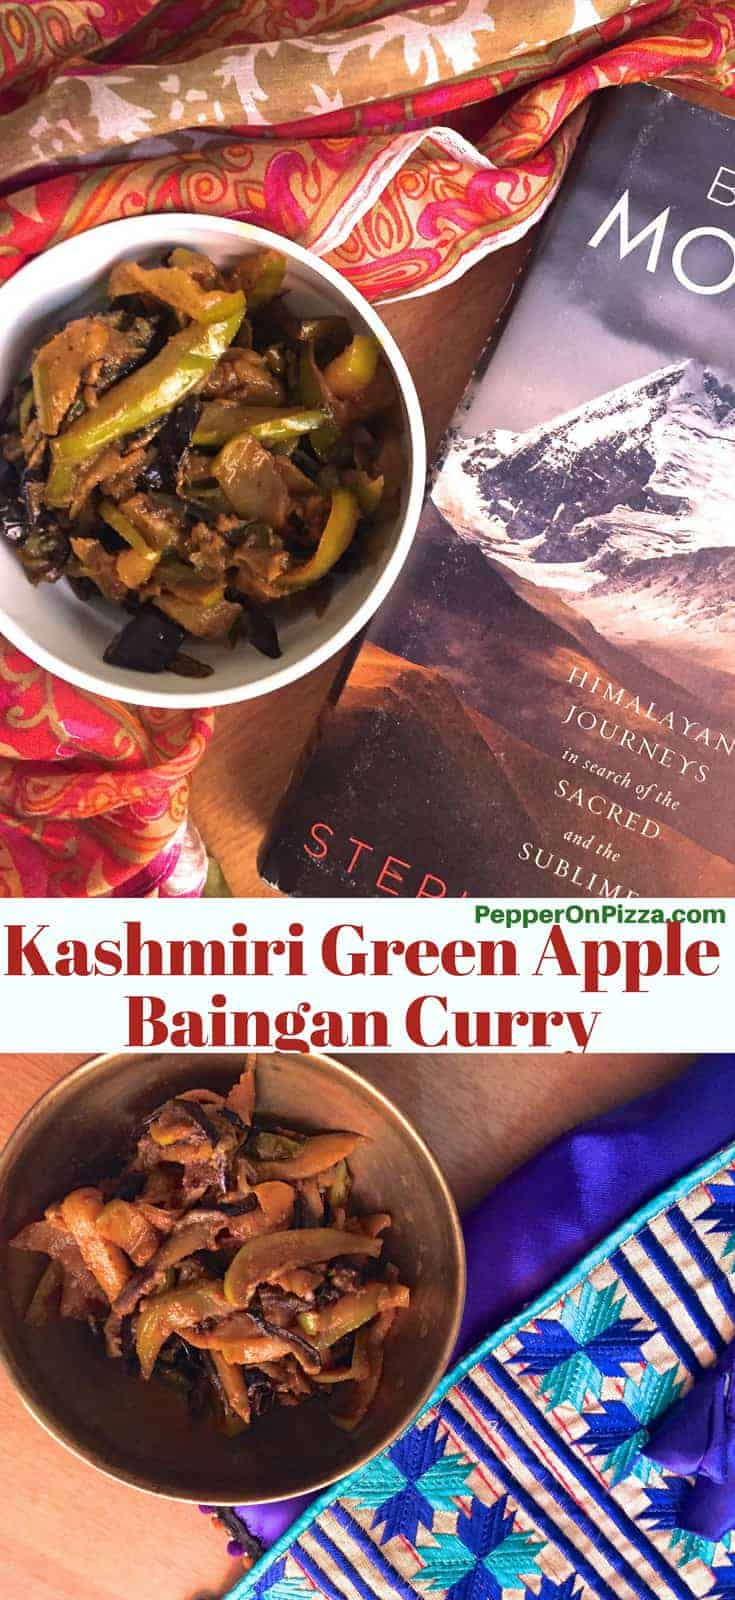 A white bowl with Kashmiri Green apple brinjal curry resting on a saffron and white silk stole and with a grey book on the Himalayas alongside